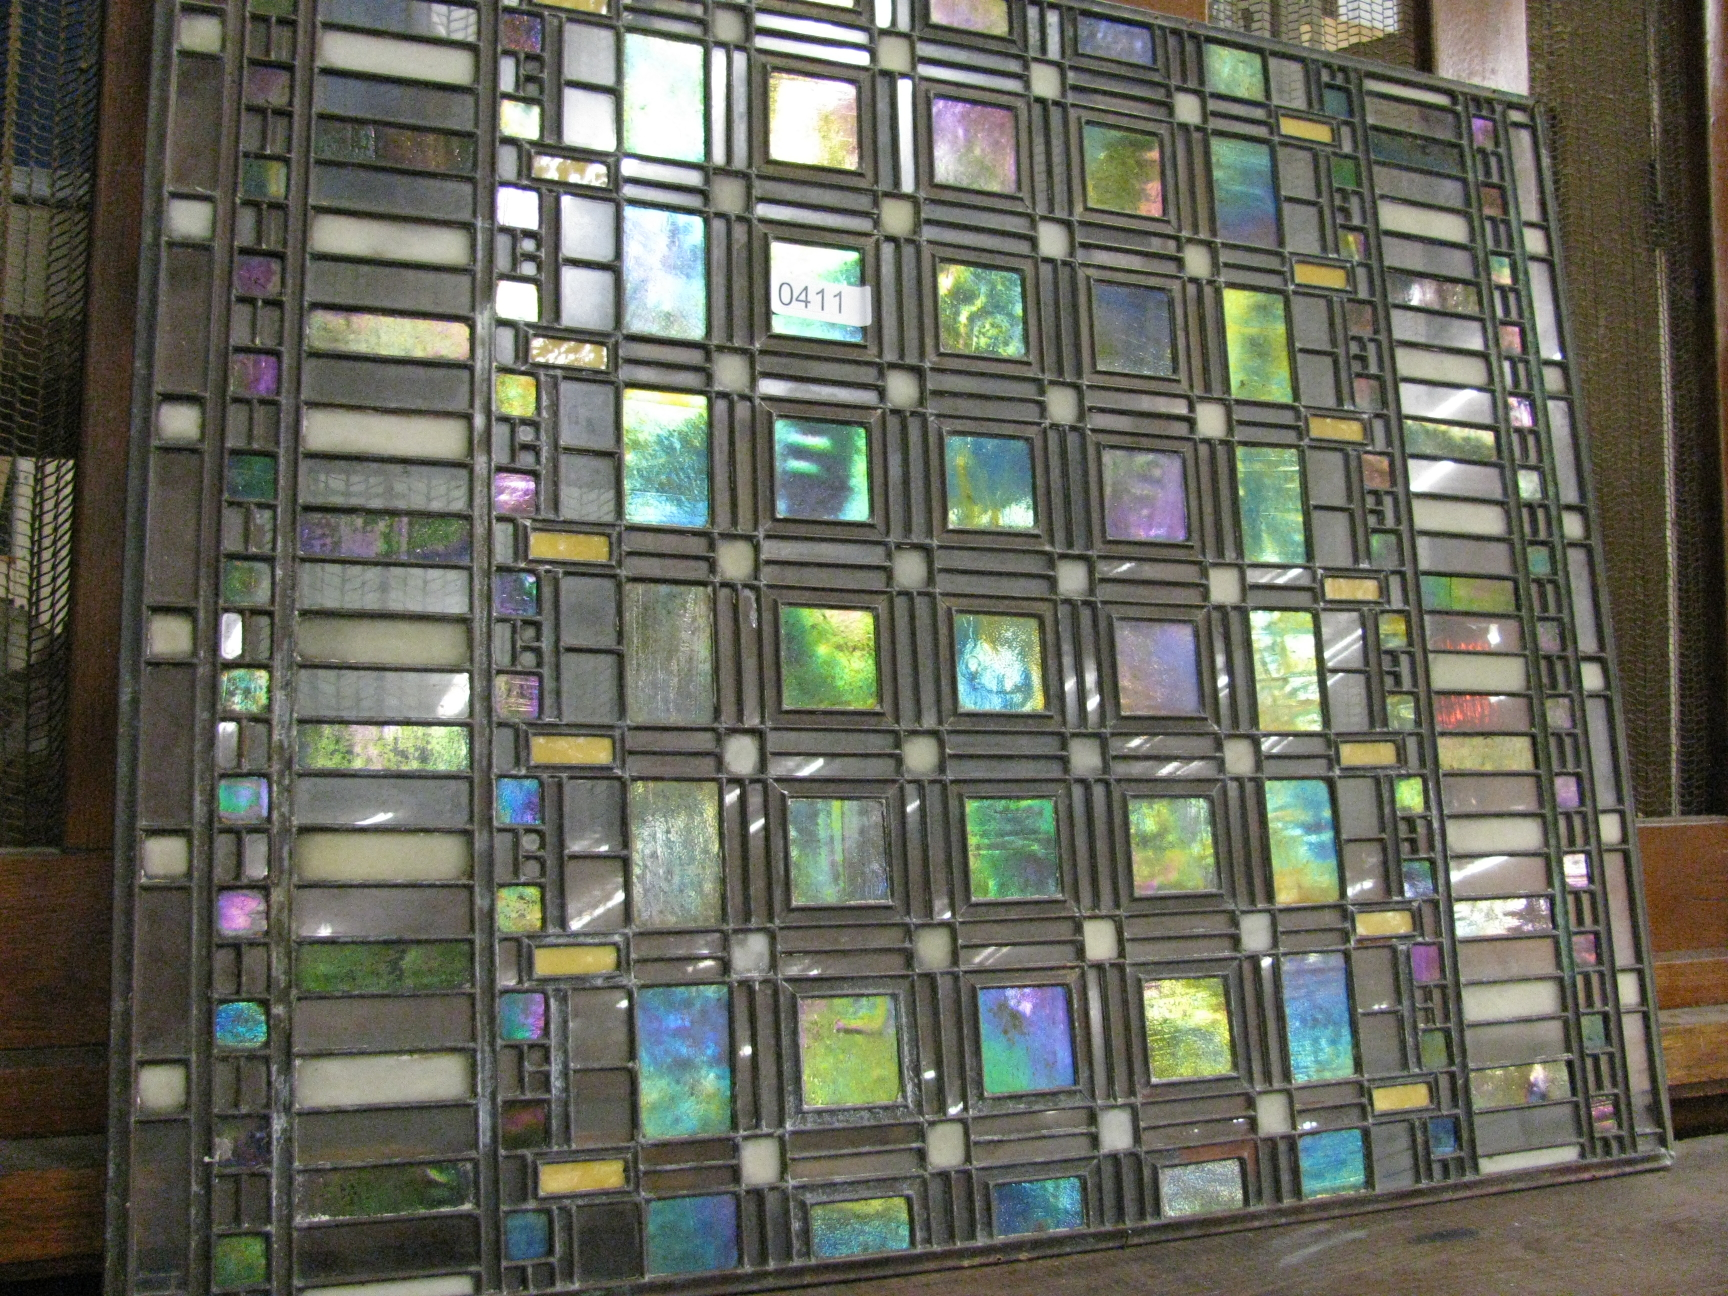 Rare frank lloyd wright glass window to be auctioned for Glass windows